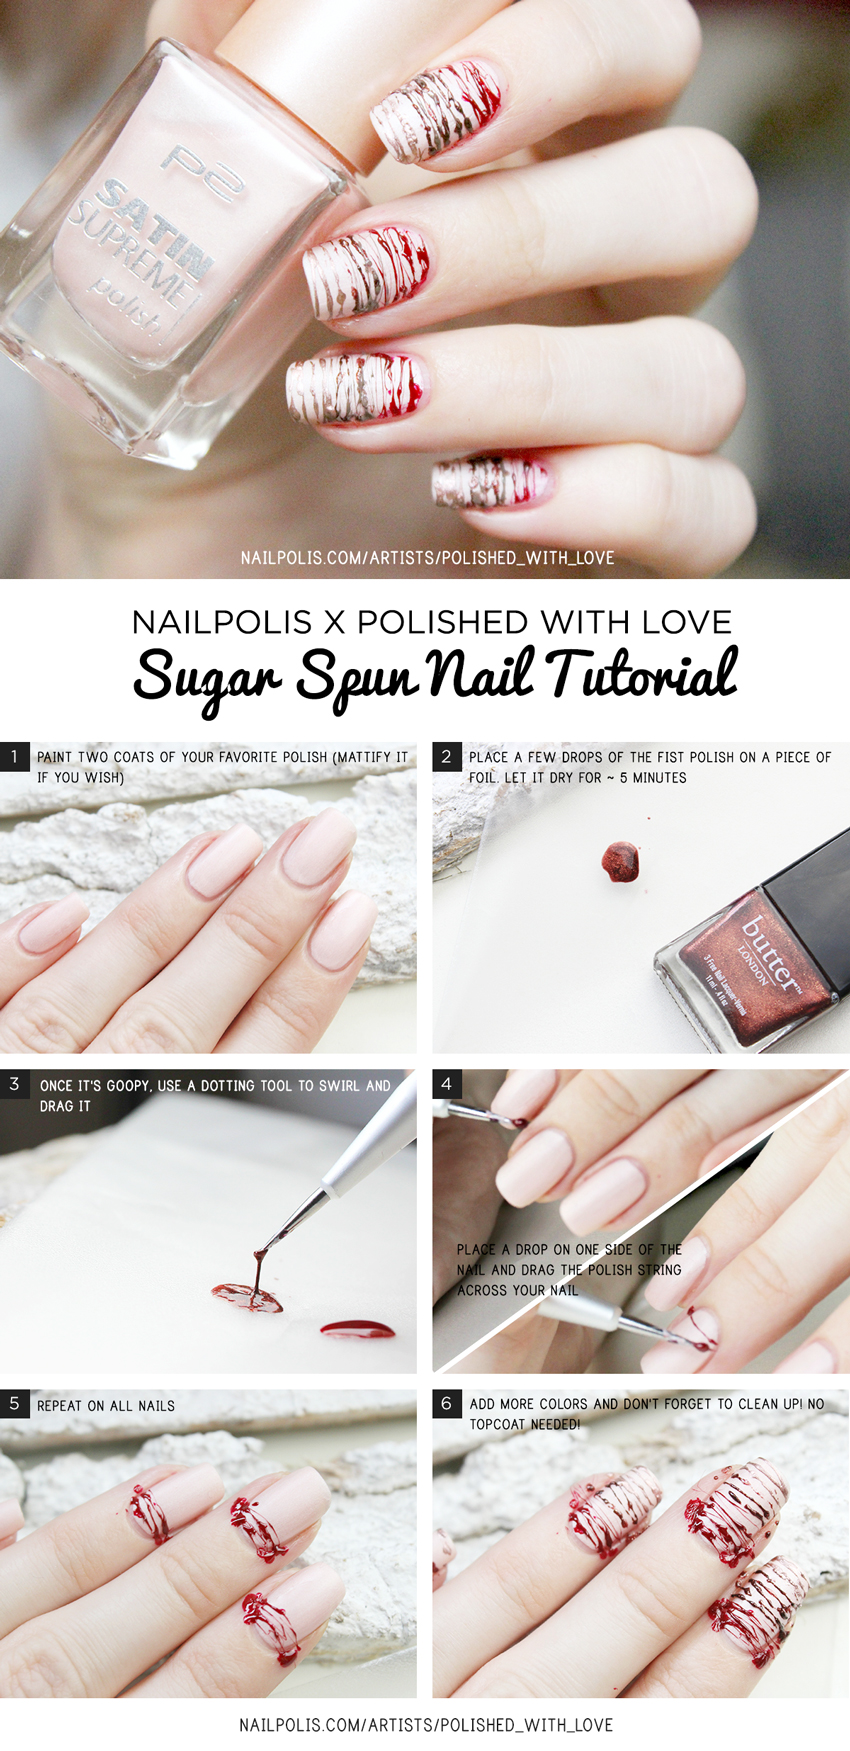 Sugar Spun Nail Art Tutorial | Nailpolis Magazine